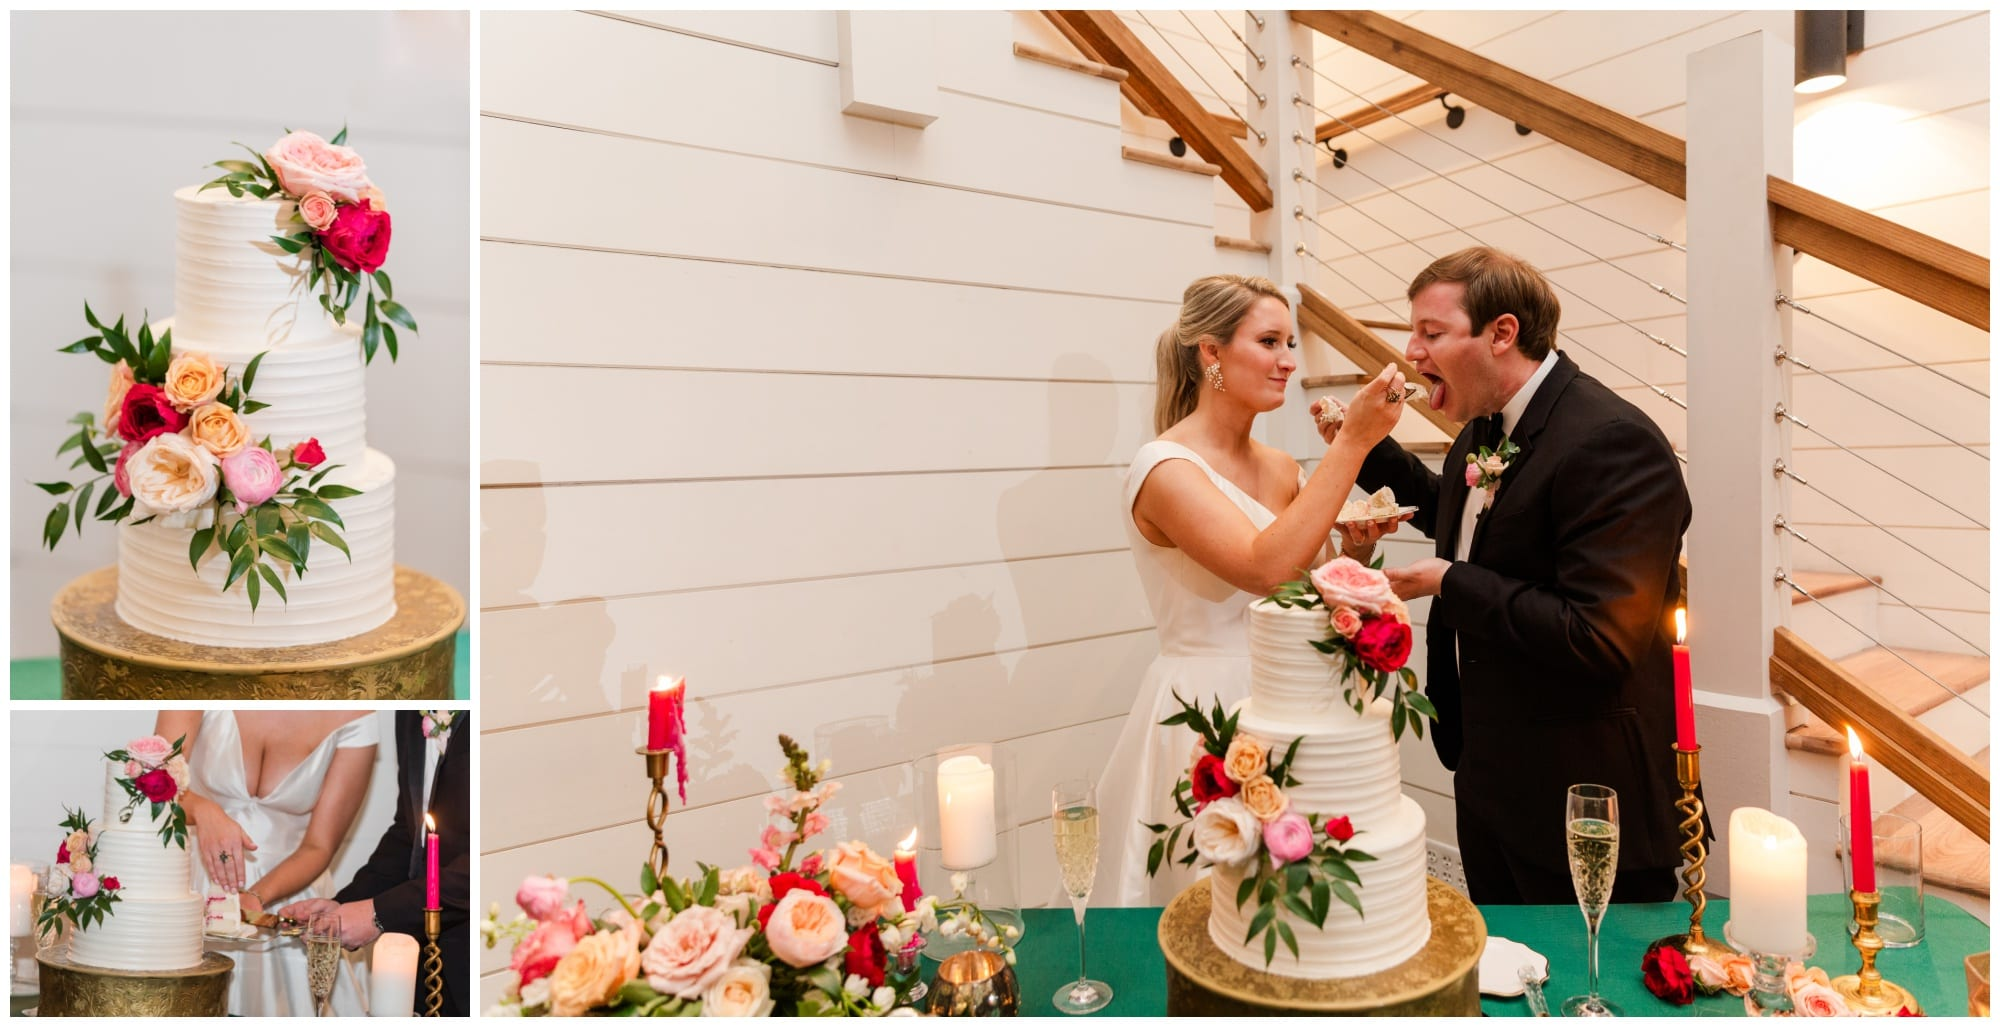 bride and groom share cake at wedding